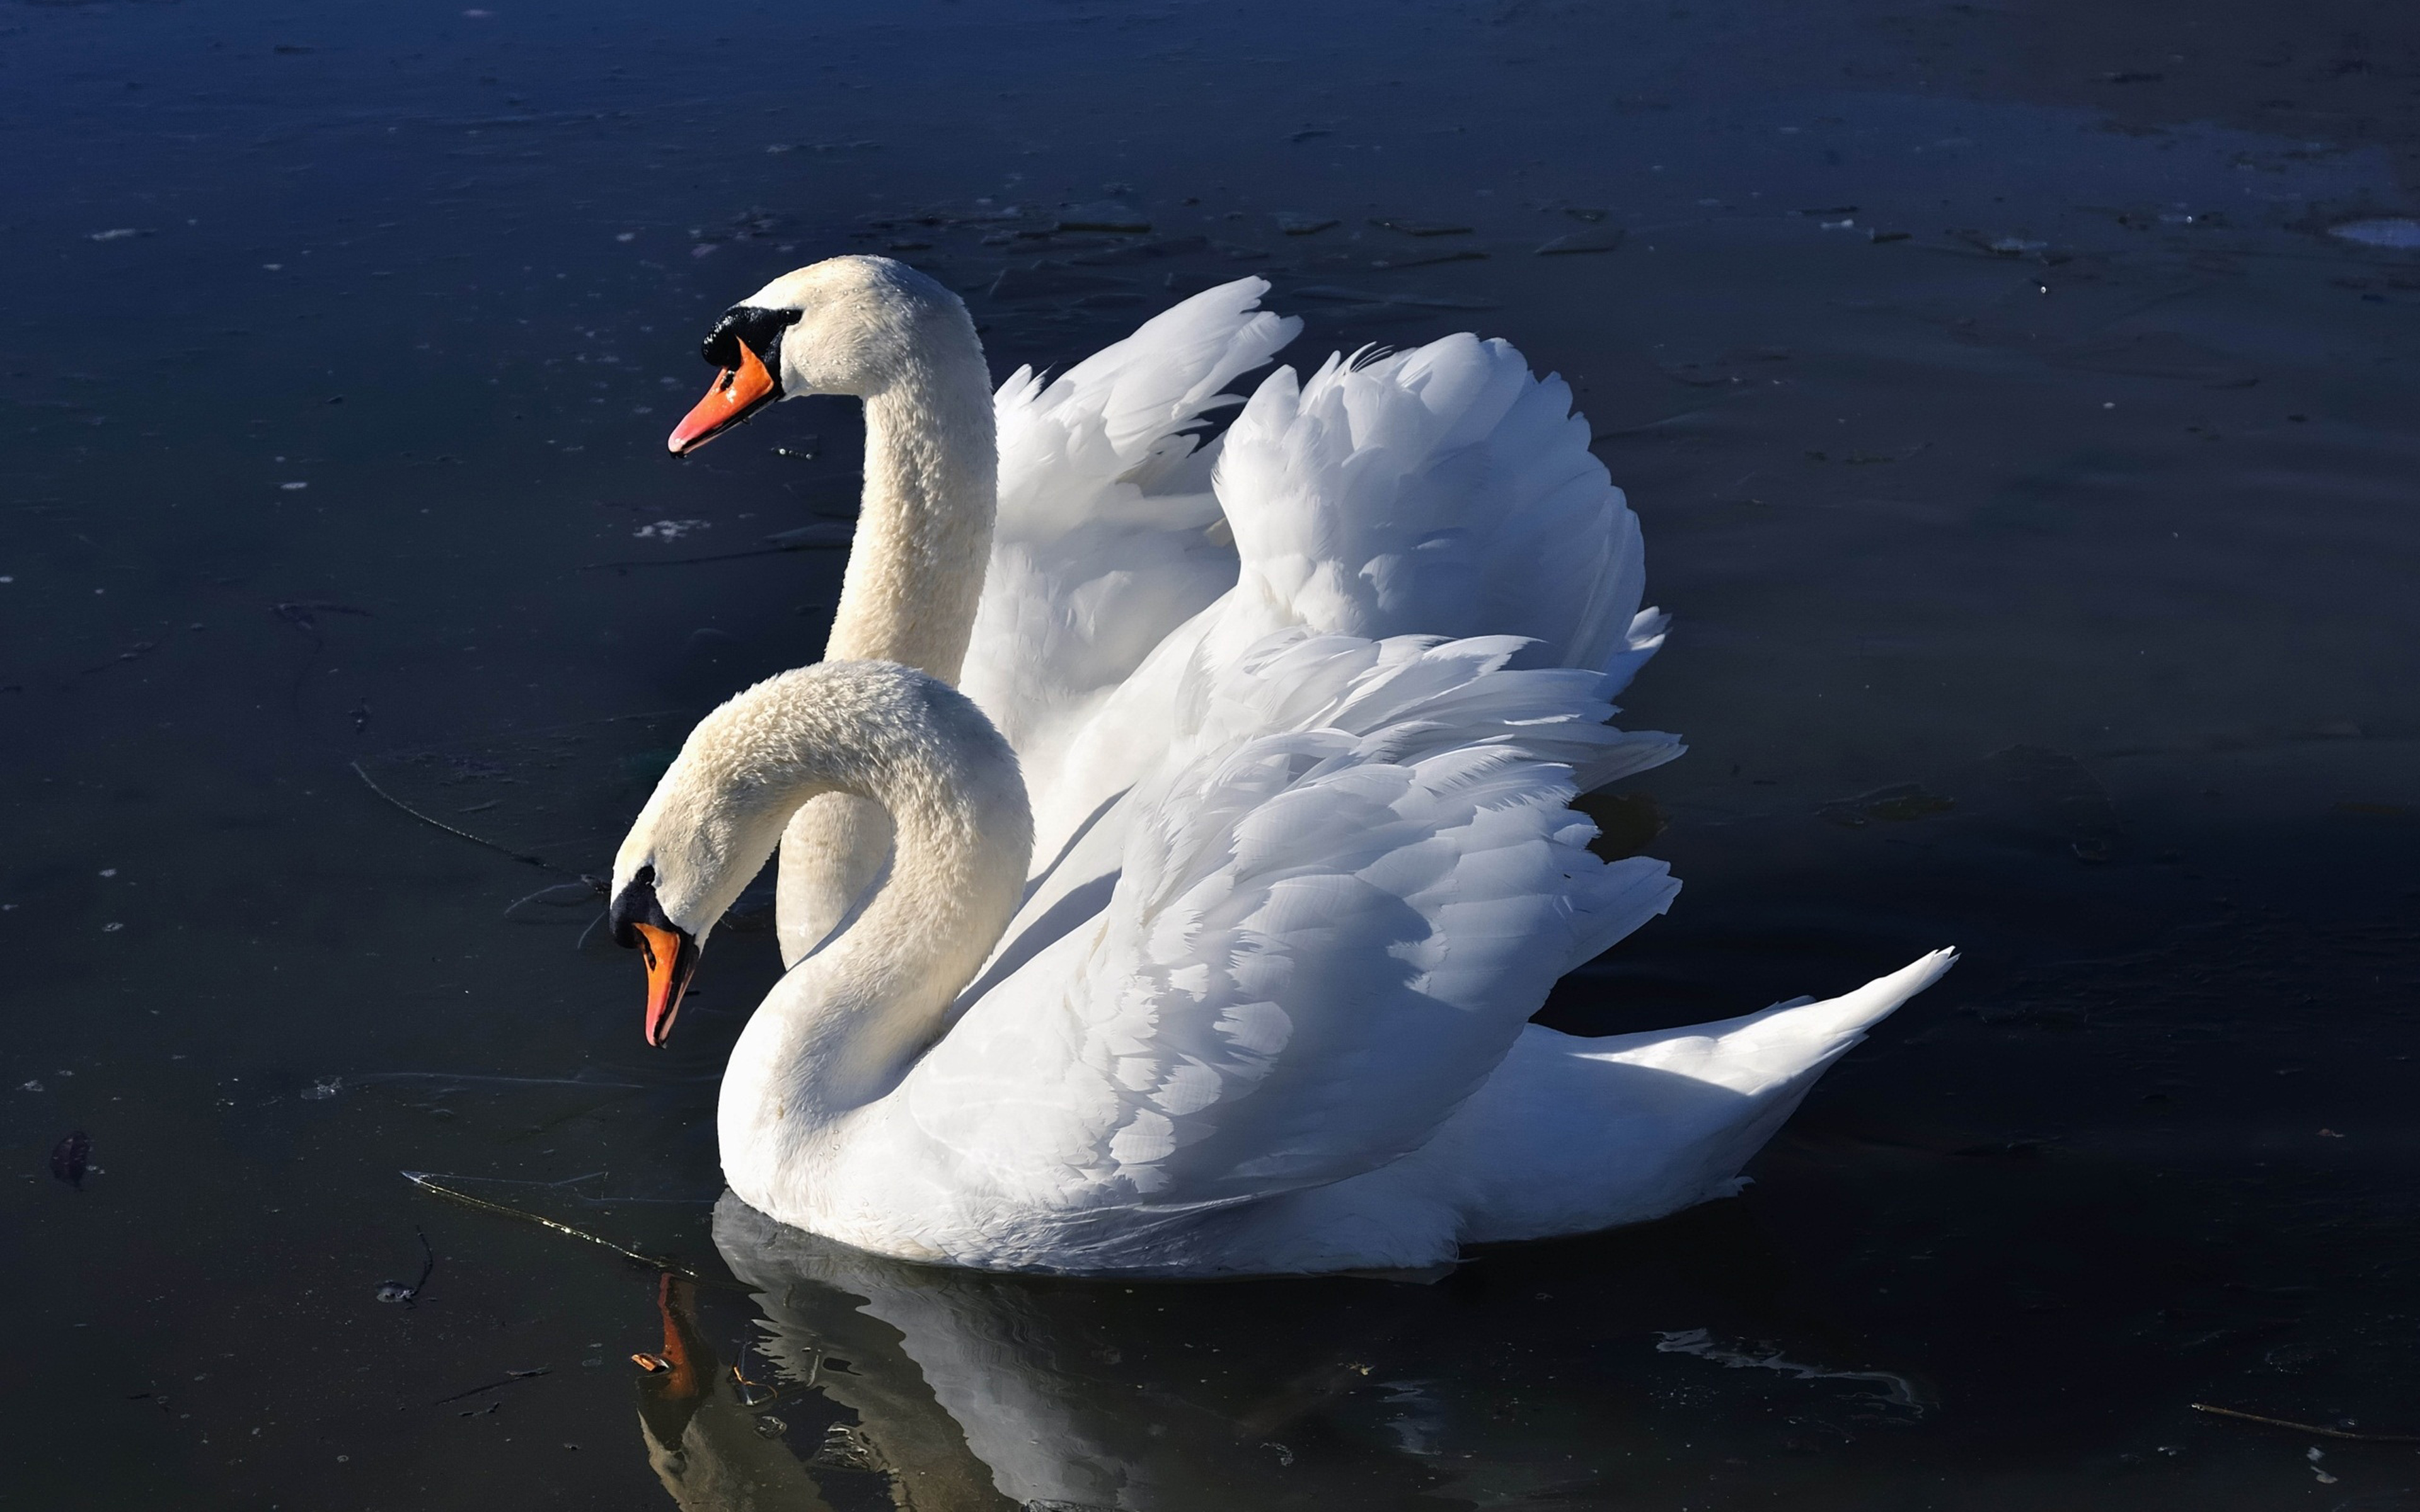 Cute Animated Wallpapers Gif Pair Of White Swans Wallpaper Widescreen Hd 3840x2400